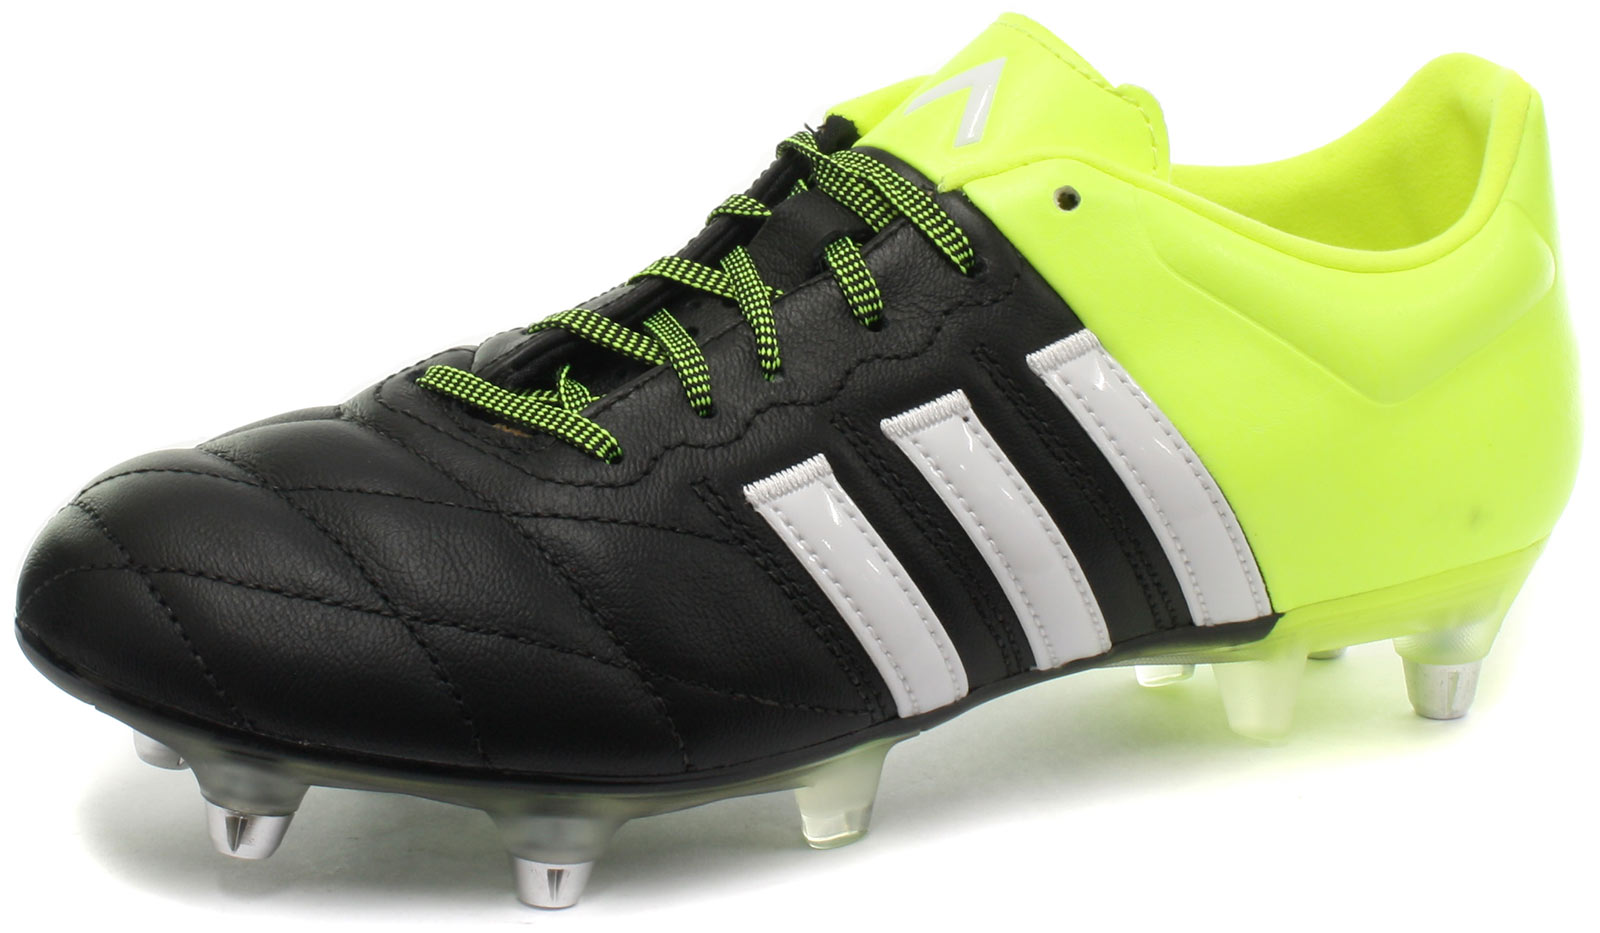 quality design 3d154 30a4e New adidas Ace 15.2 SG Leather Mens Football Boots  Soccer Cleats ALL  SIZES 1 of 6FREE Shipping ...